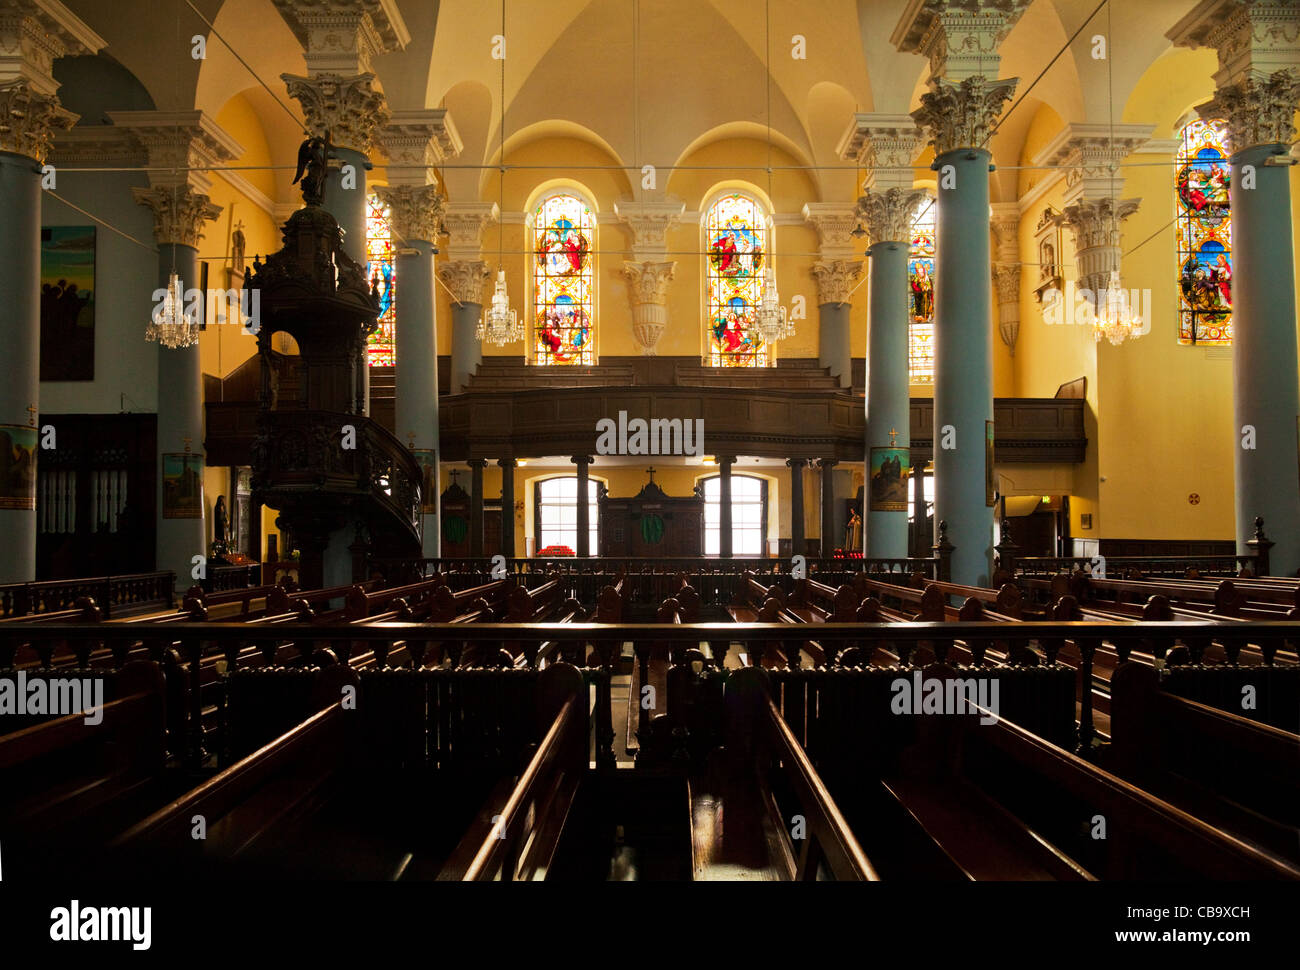 Stained Glass Windows in Holy Trinity R.C. Cathedral, Waterford City, Ireland Stock Photo